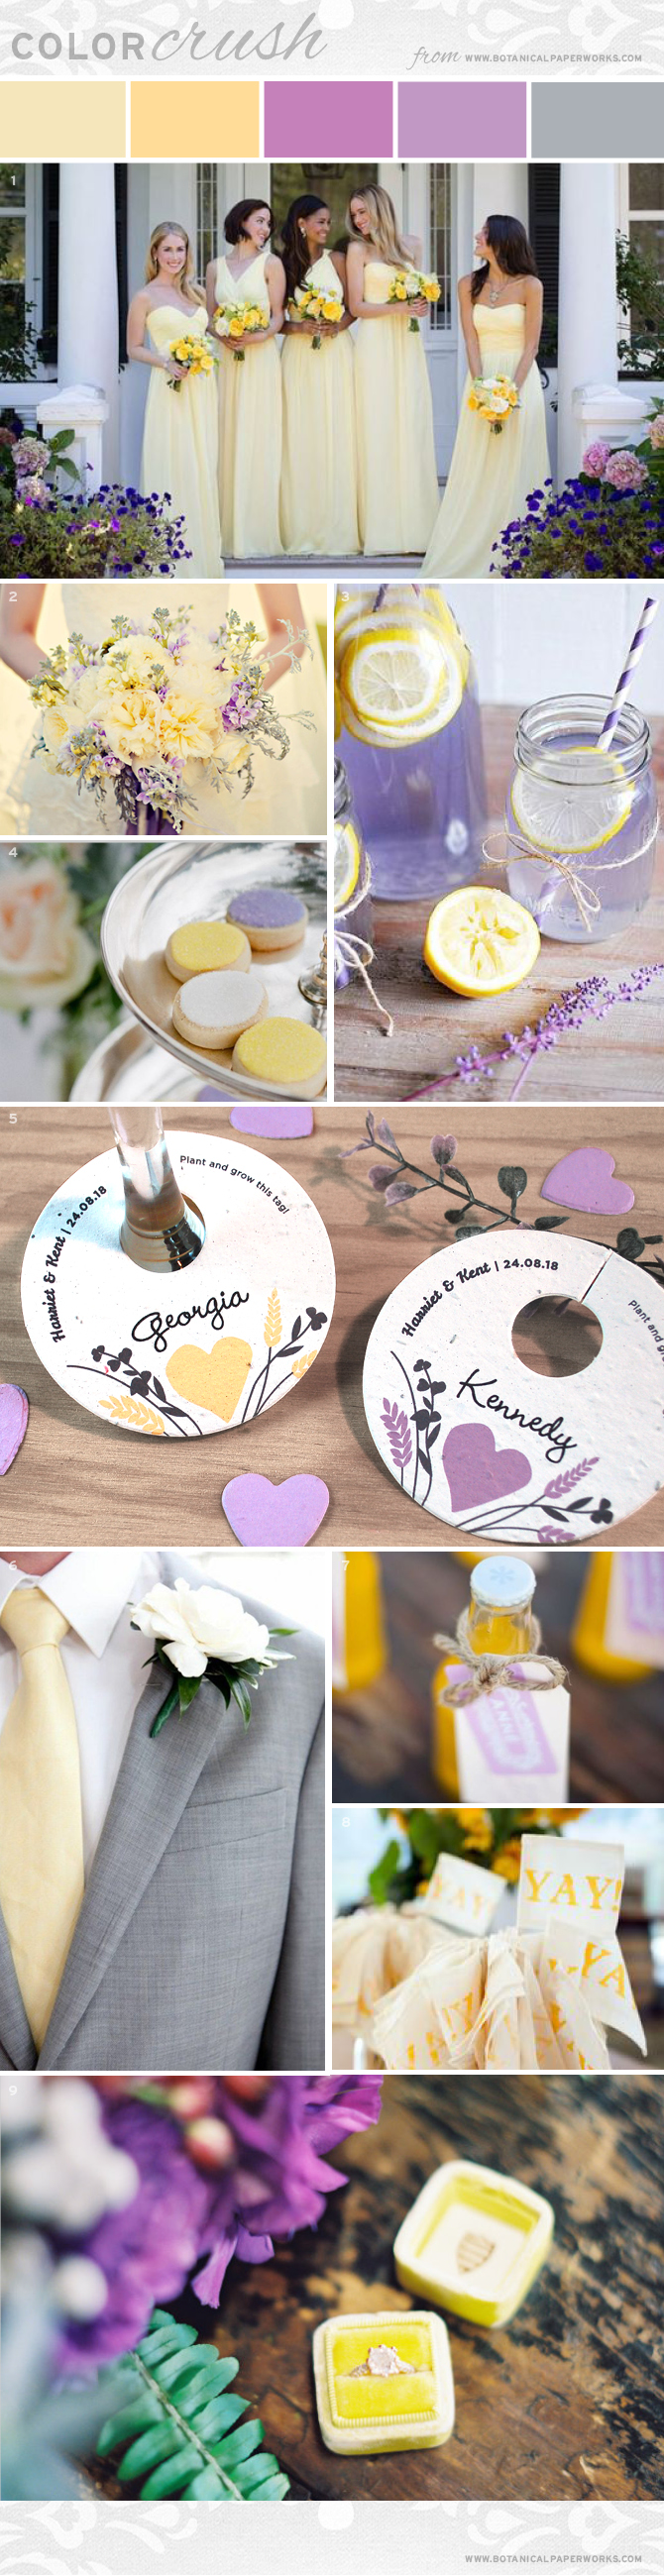 Soft yellow shades have the power to grab attention while making people feel happy, relaxed and optimistic. Since this shade is so cheerful and radiant, it's the perfect choice for summer weddings when paired with lilac and lavender. Take a look at our latest color crush to get inspired by this fabulous color palette! #weddings #brides #seedpaper #ecofriendly